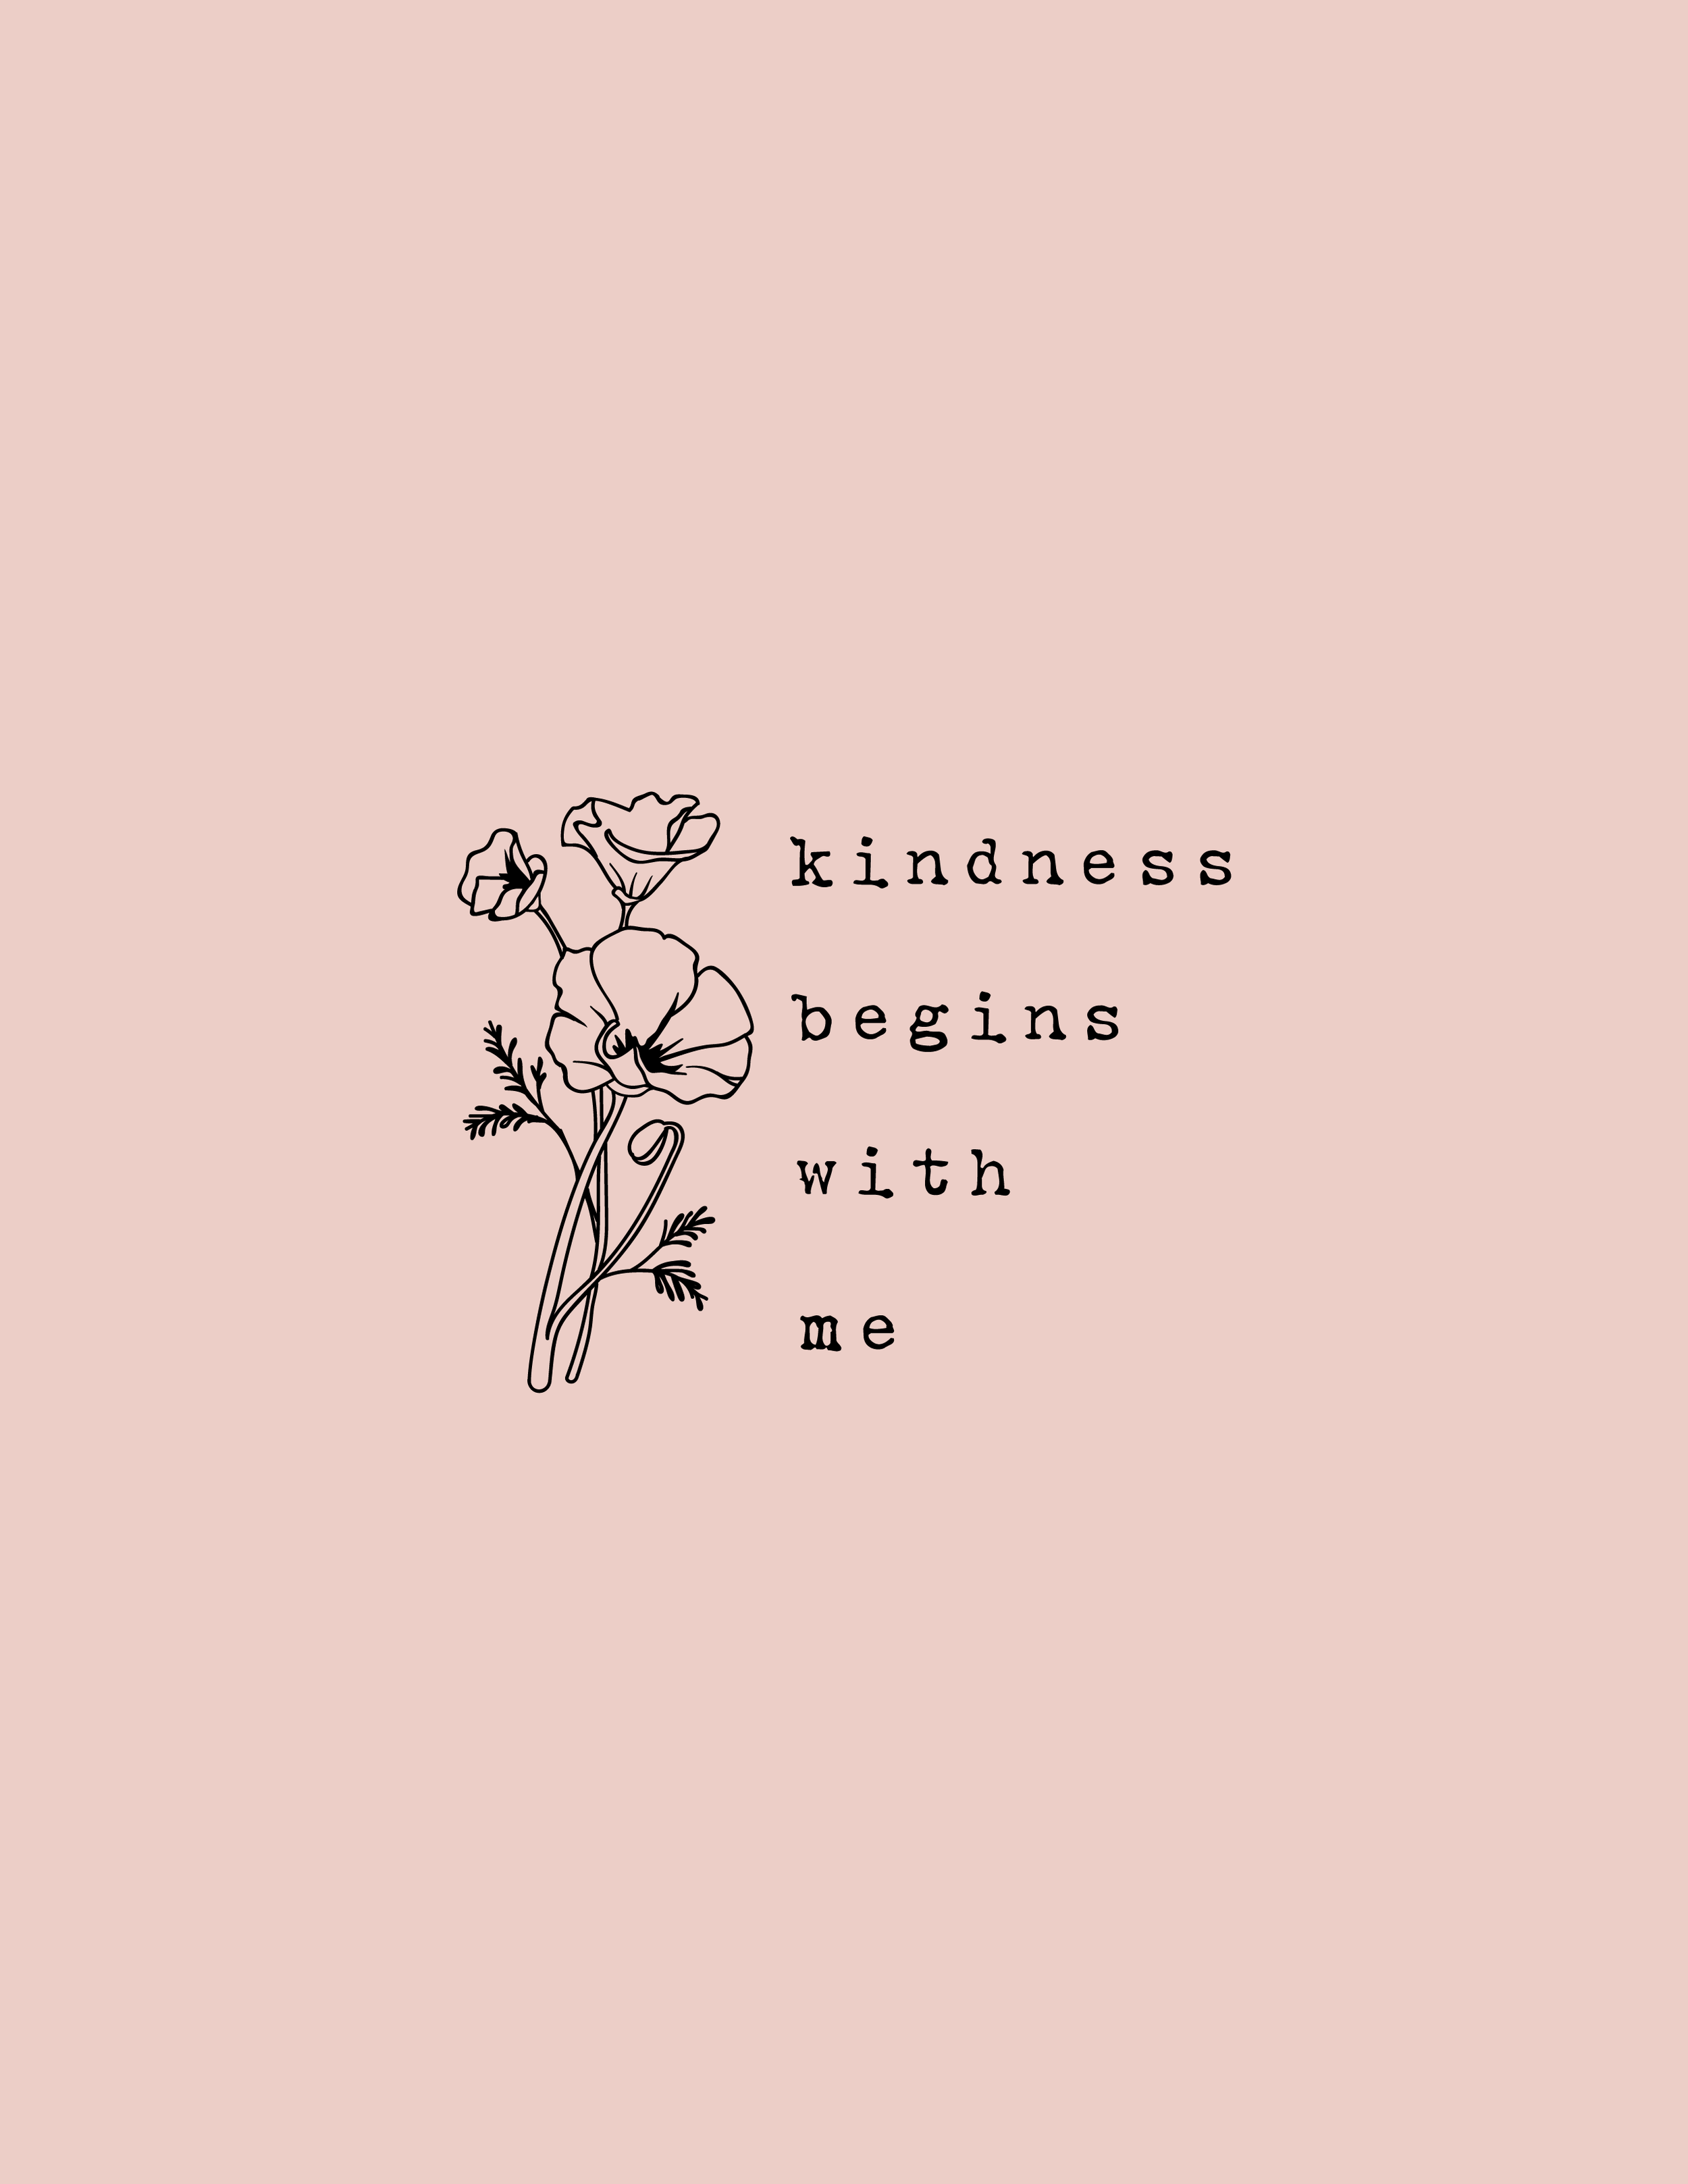 KINDNESS BEGINS WITH ME-02.png